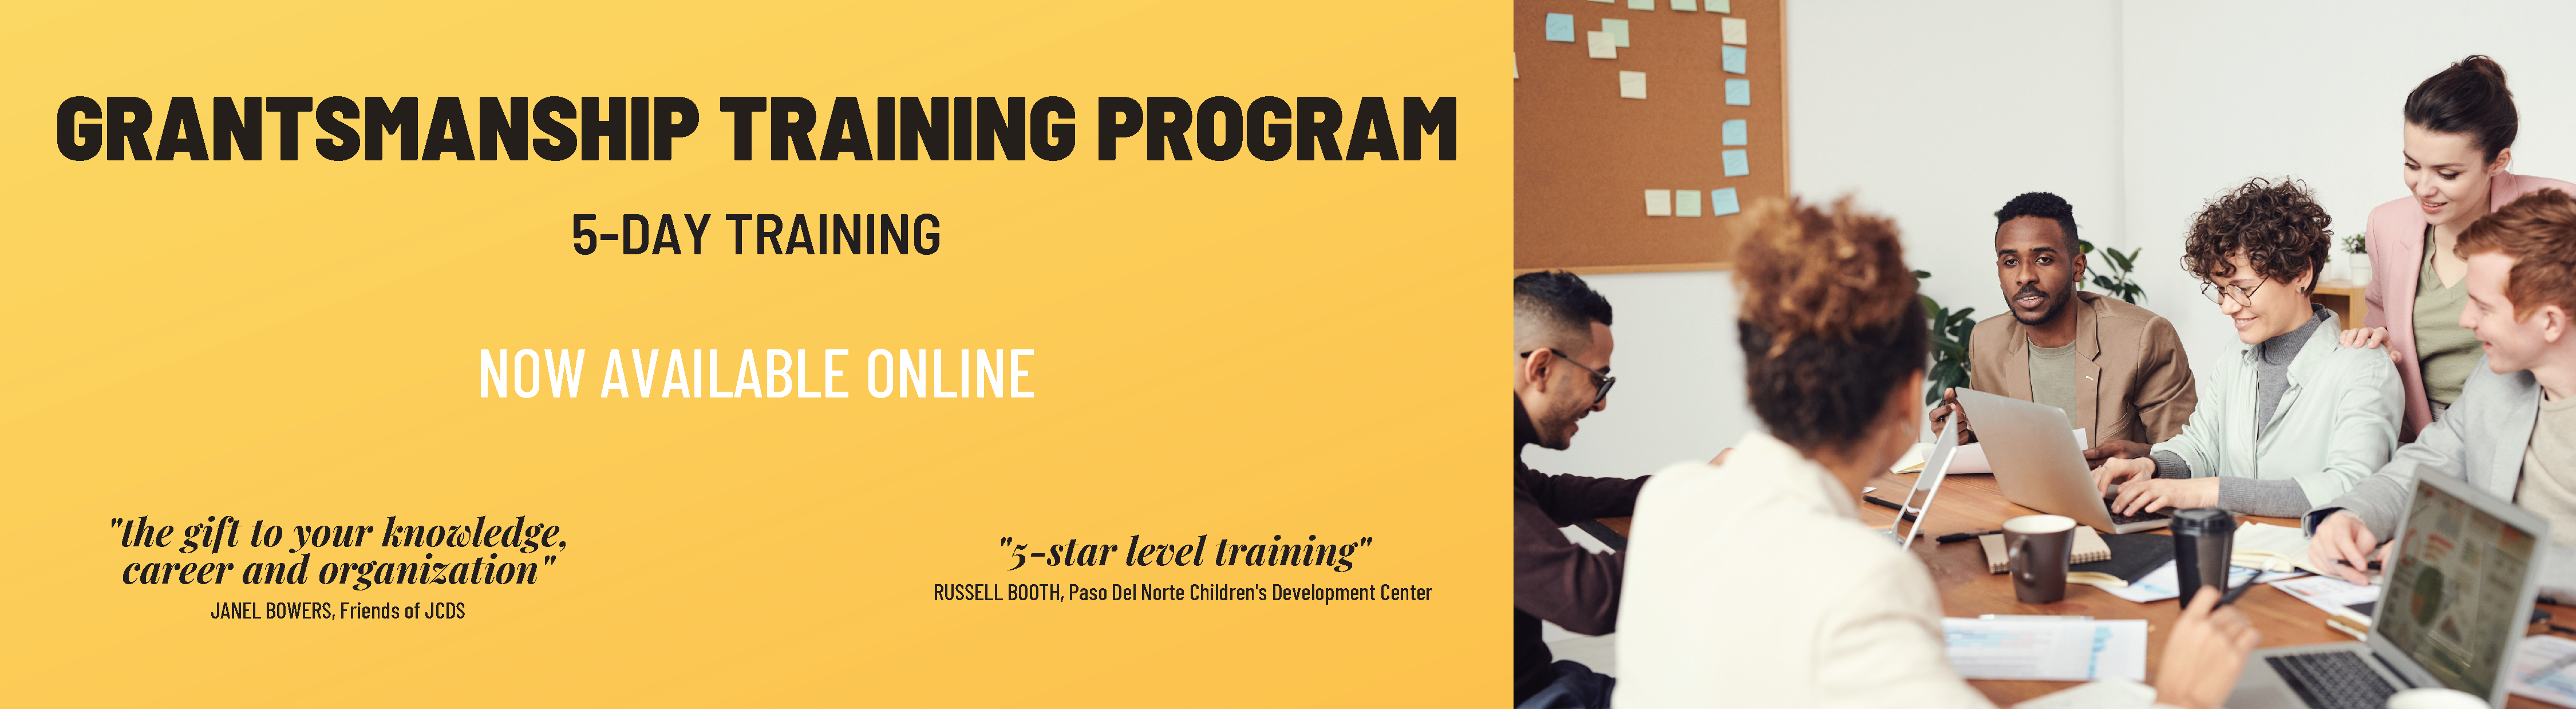 """Grantsmanship Training Program: 5-Day Training. Now Available Online. """"The gift to your knowledge, career, and organization."""" Janel Bowers, Friends of JCDS; """"5-Star level training."""" Russell Booth, Paso Del Norte Children's Development Center"""